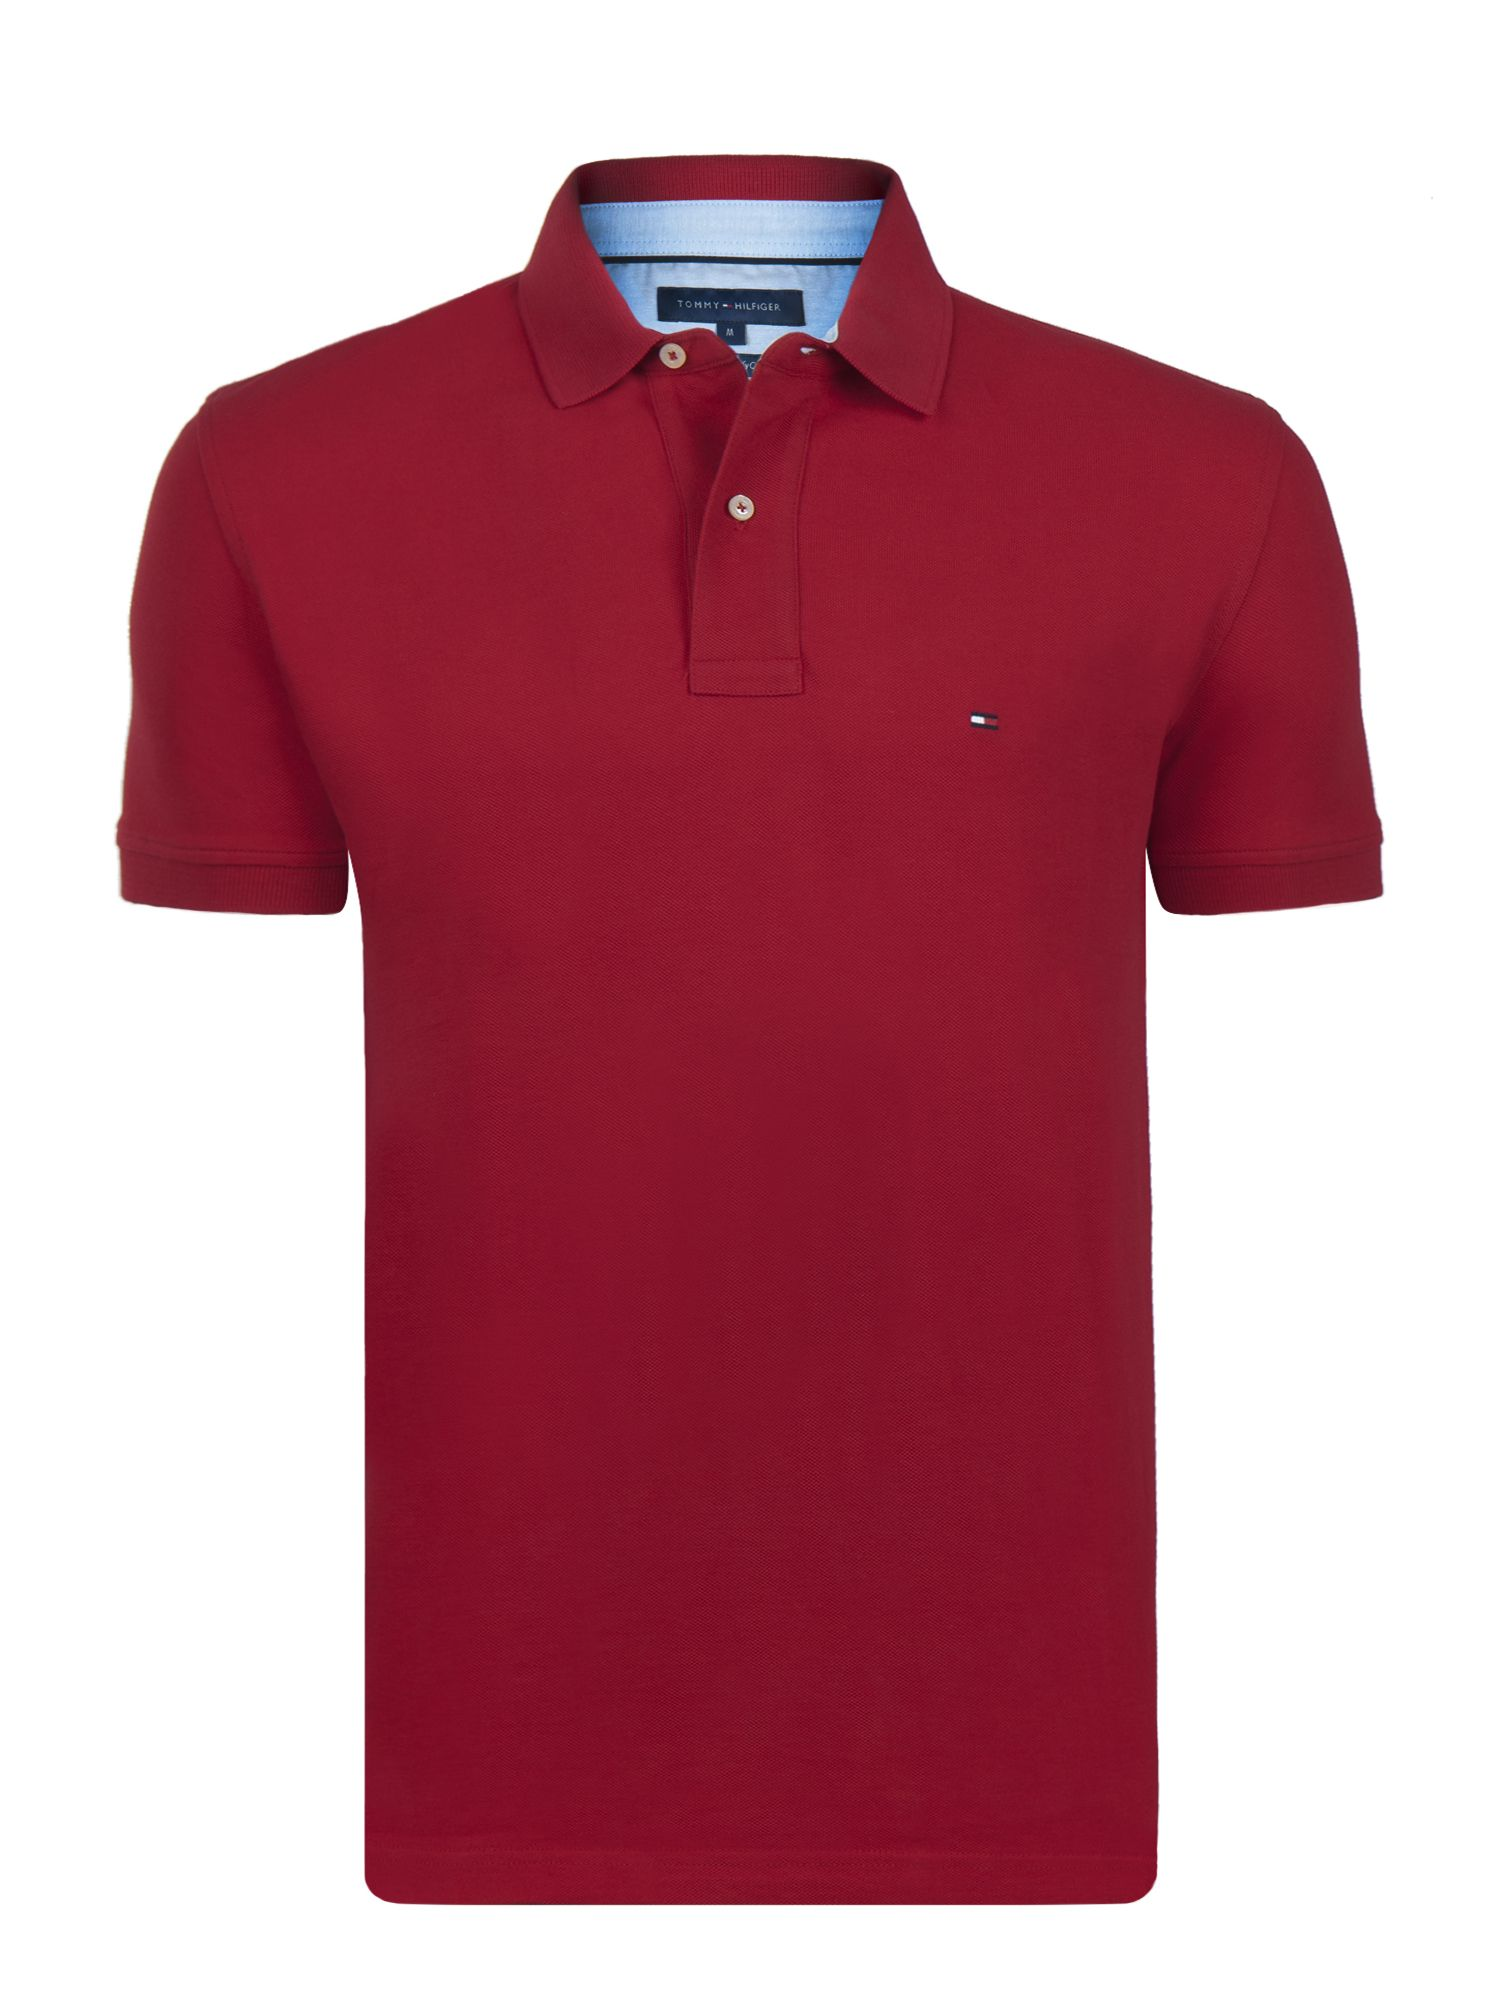 f5c005883 Tommy Hilfiger Man s Short Sleeve Polo Shirts from S to 2XL Wholesale Price    19 € (incl.Transport) International Shipment